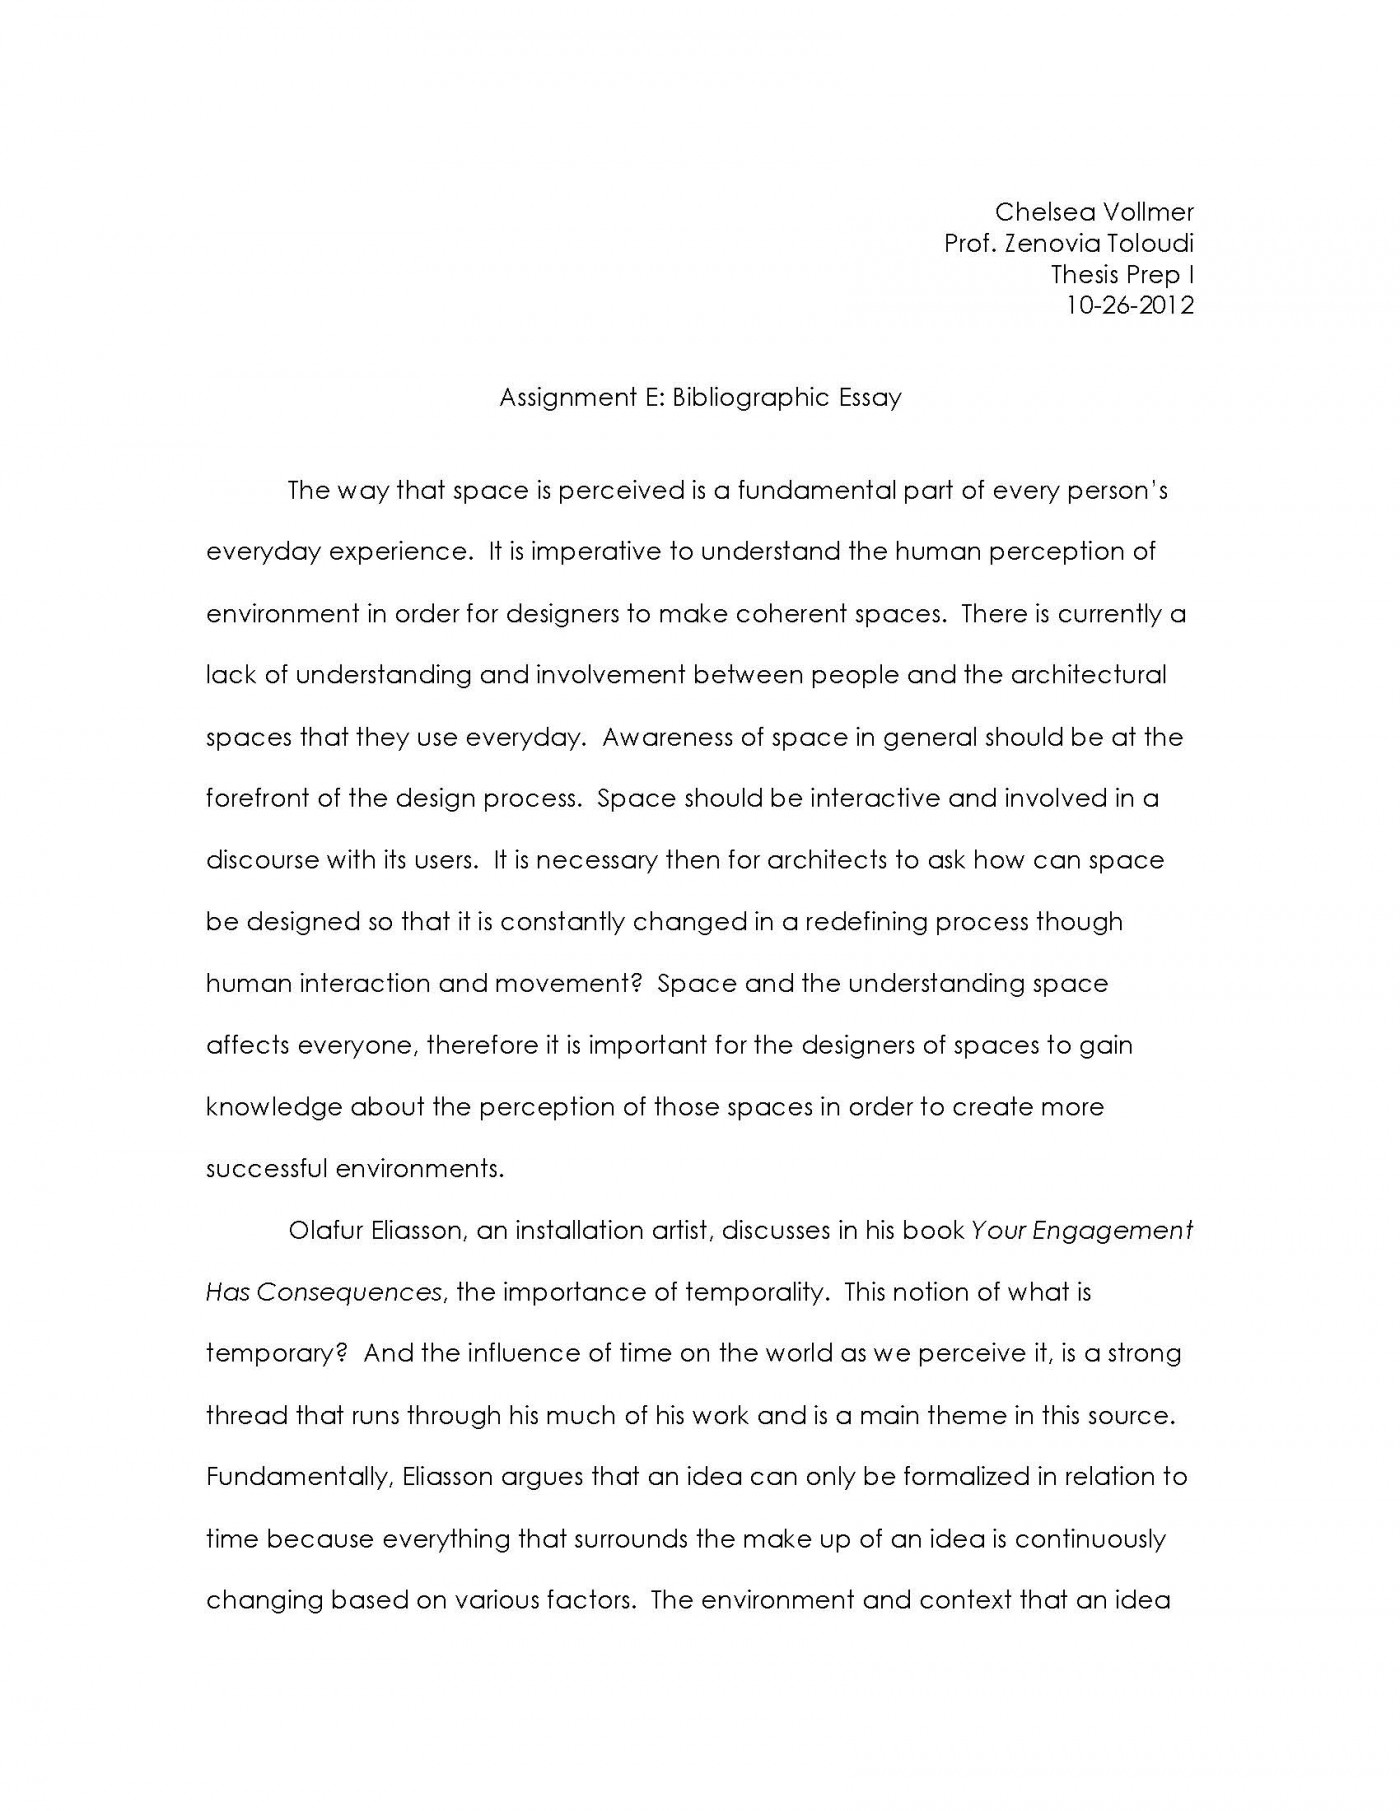 018 Assignment E Page 12 Essay Example Satire On School Dress Beautiful Code 1400